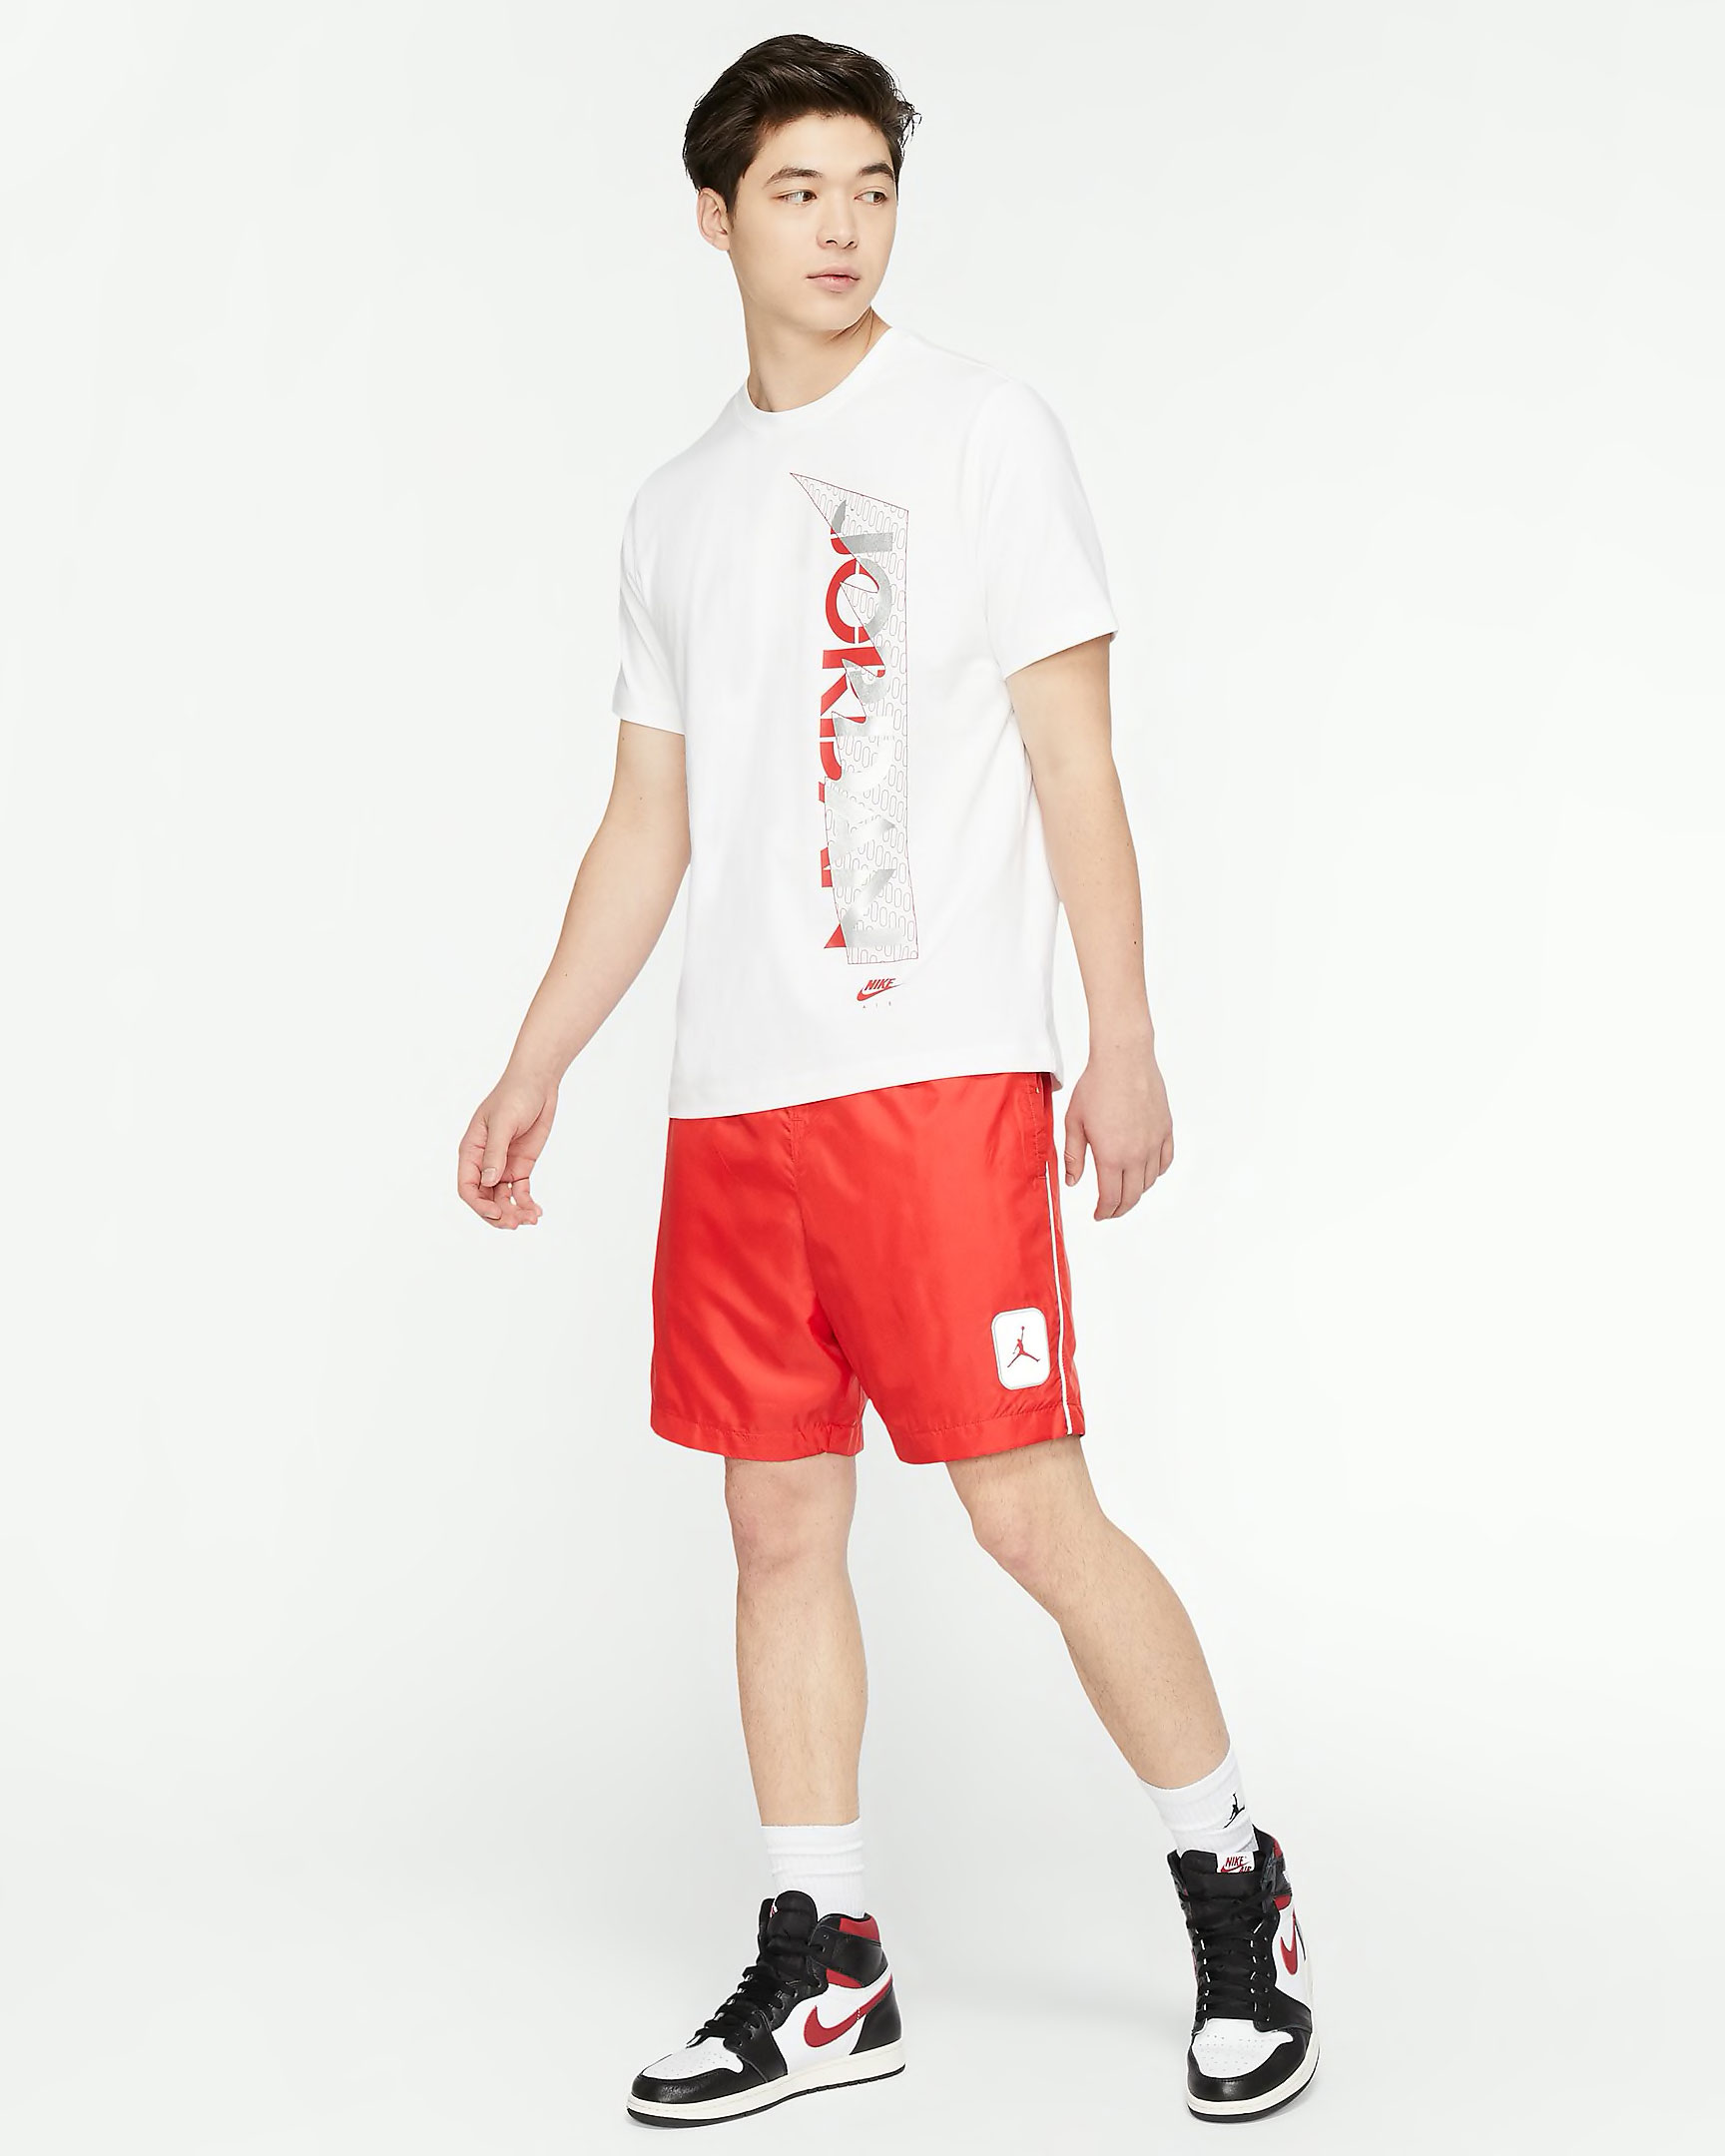 air-jordan-5-fire-red-2020-shirt-white-red-3